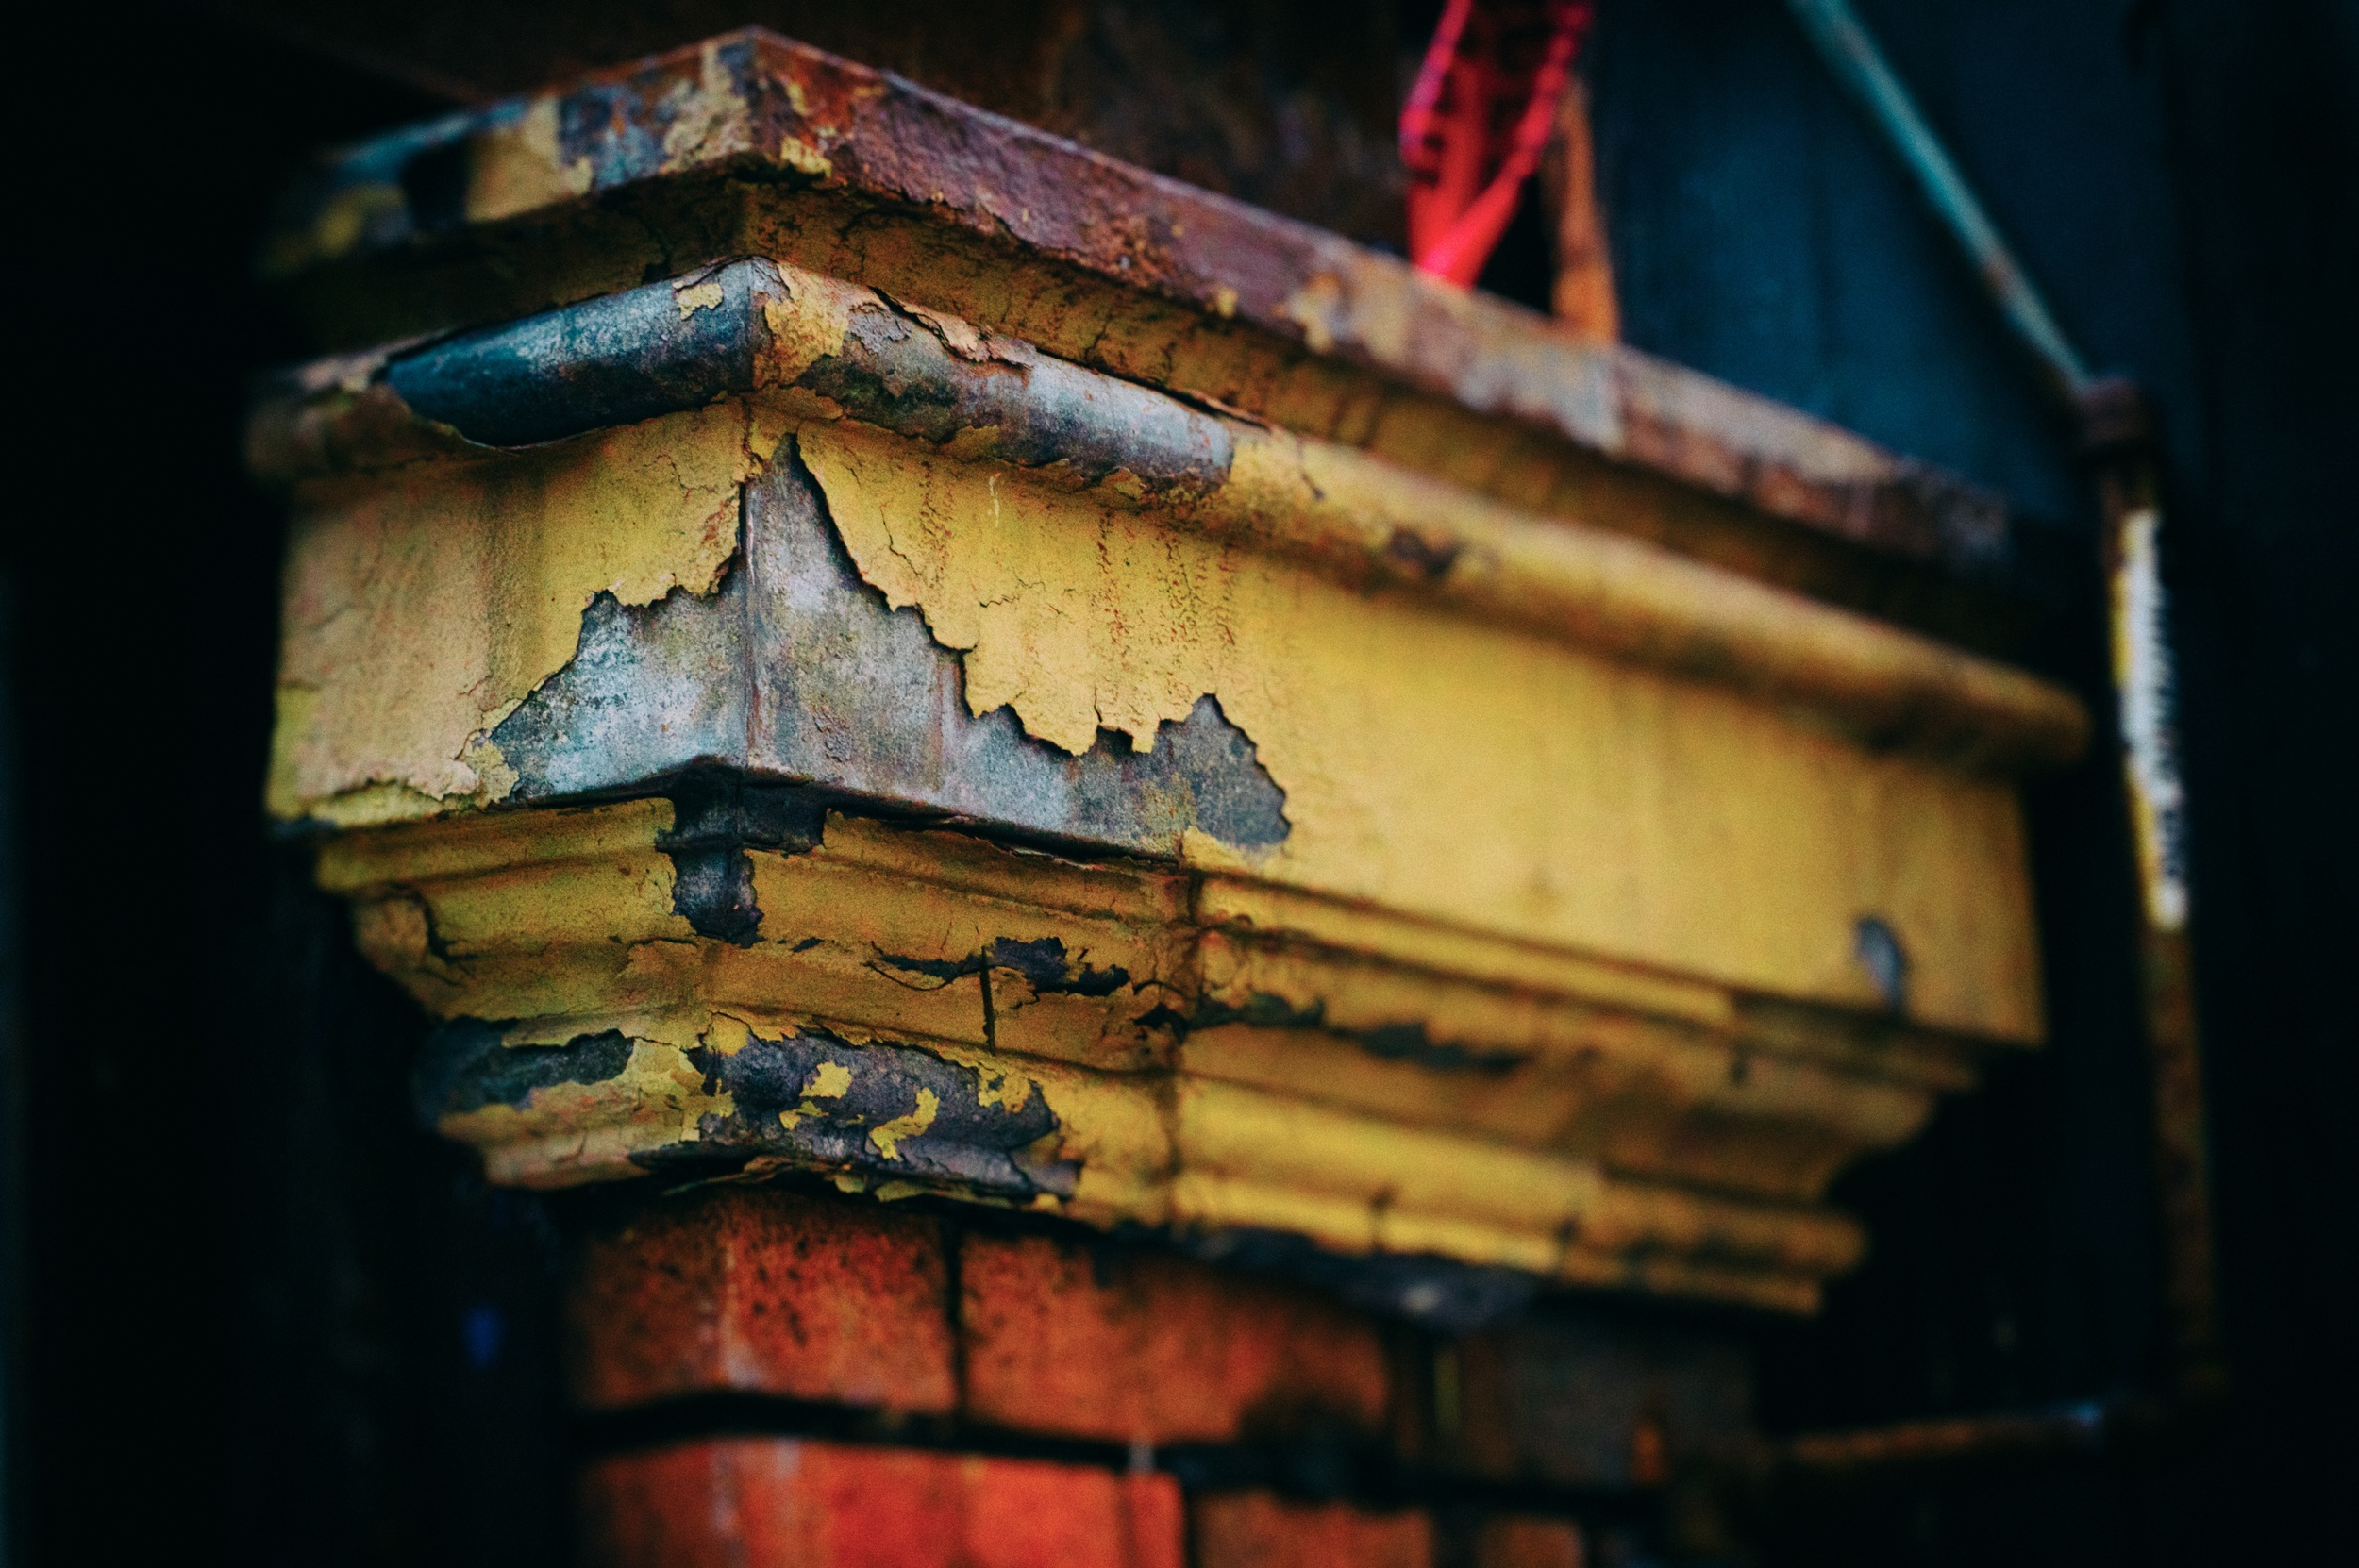 2010-12-18 at 10-36-48 Brick, Decay, Pealing Paint, Street Life, Urban, Victoria.jpg